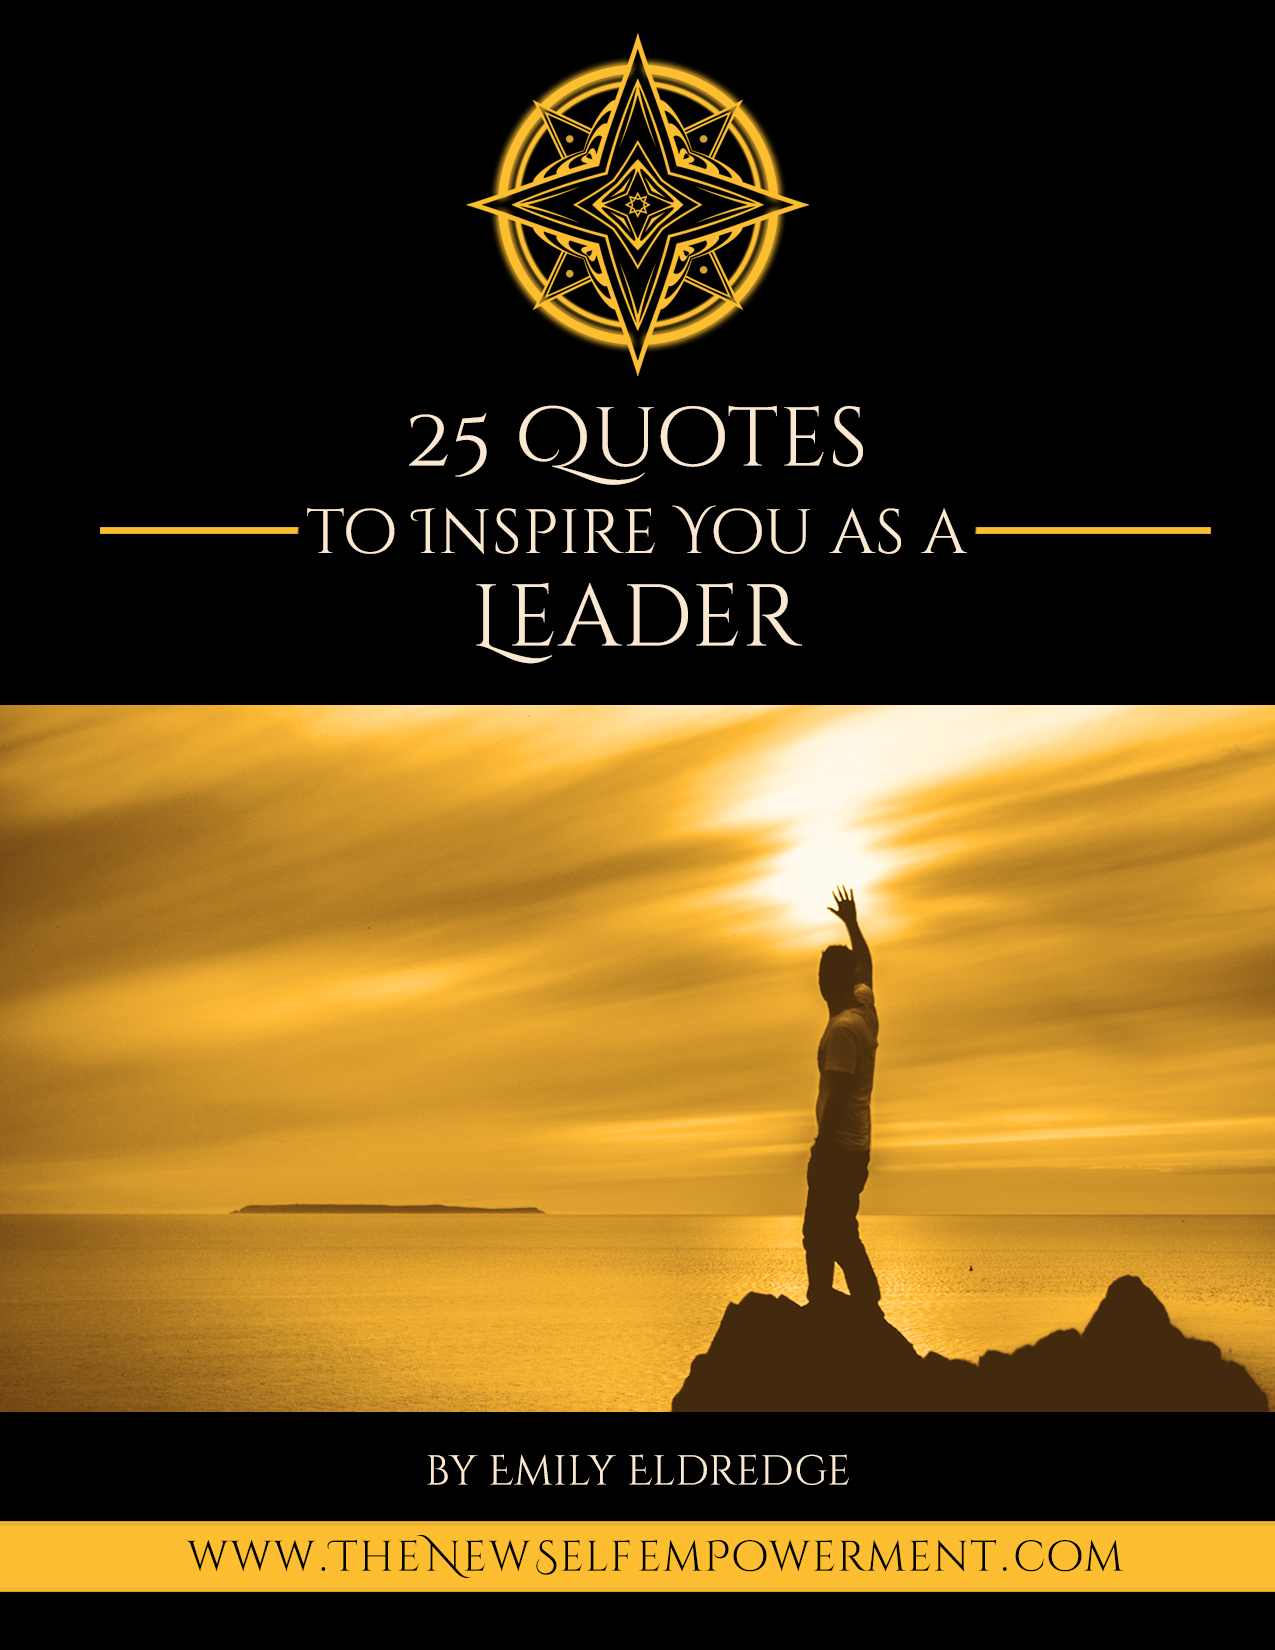 25 QUOTES BOOK - LEADER Cover